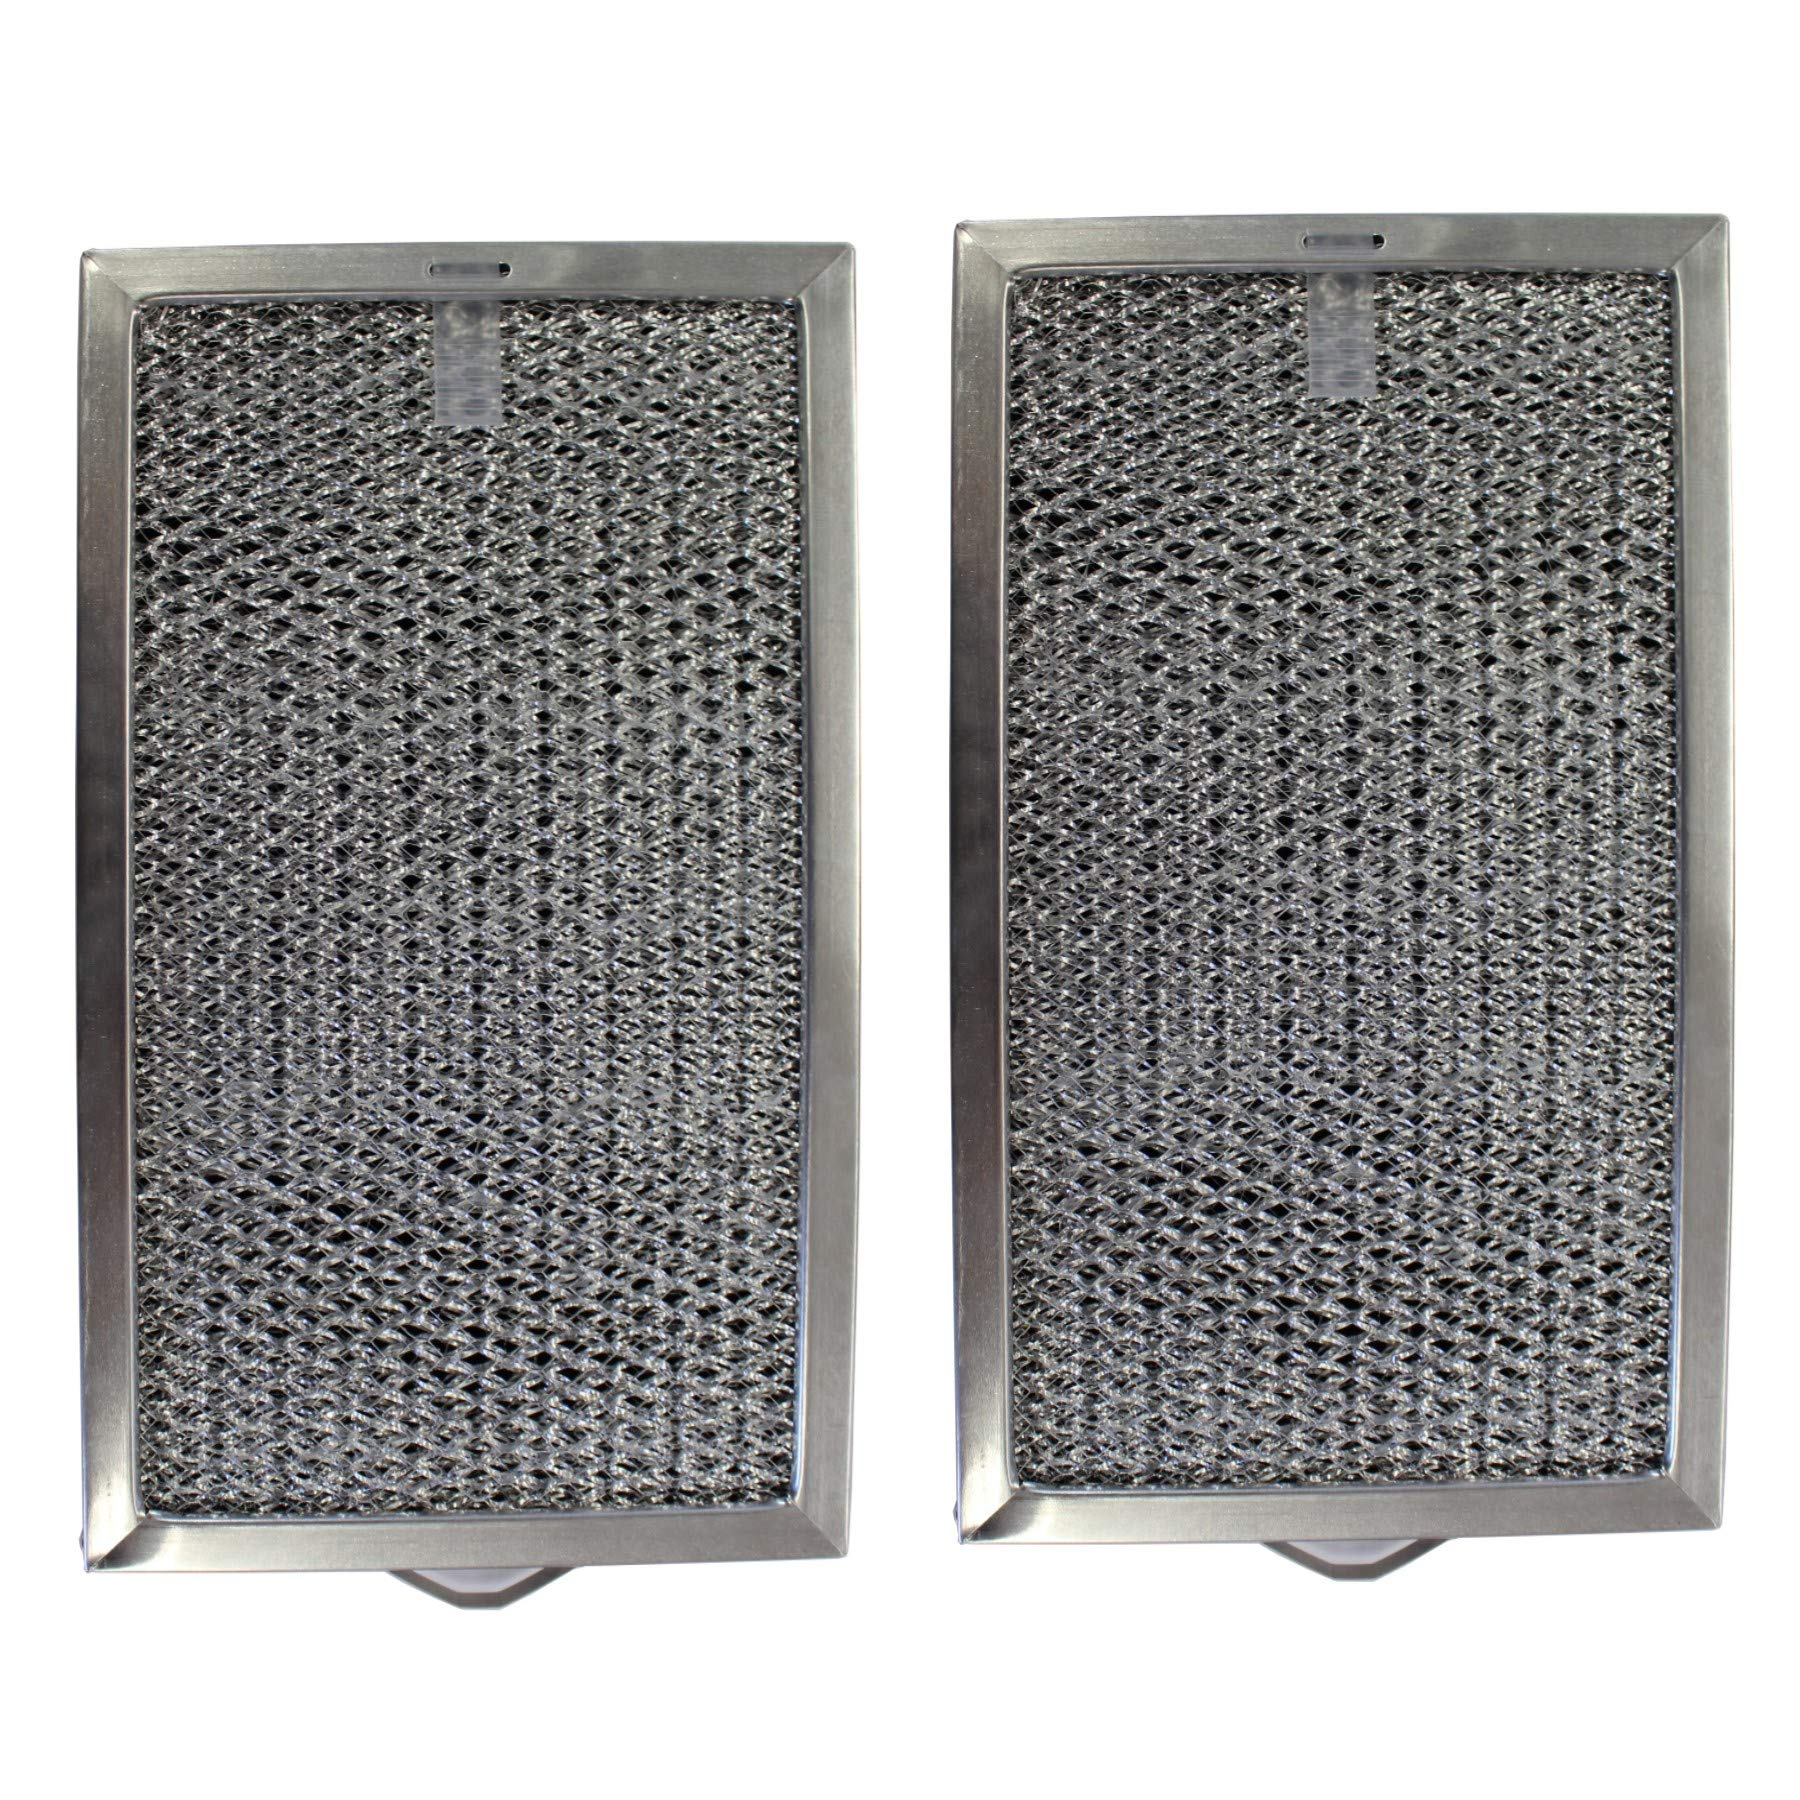 Replacement Aluminum Filters Compatible with Estate 6803, Whirlpool 6803,GC 75131,  5 13/16 x 10 x 3